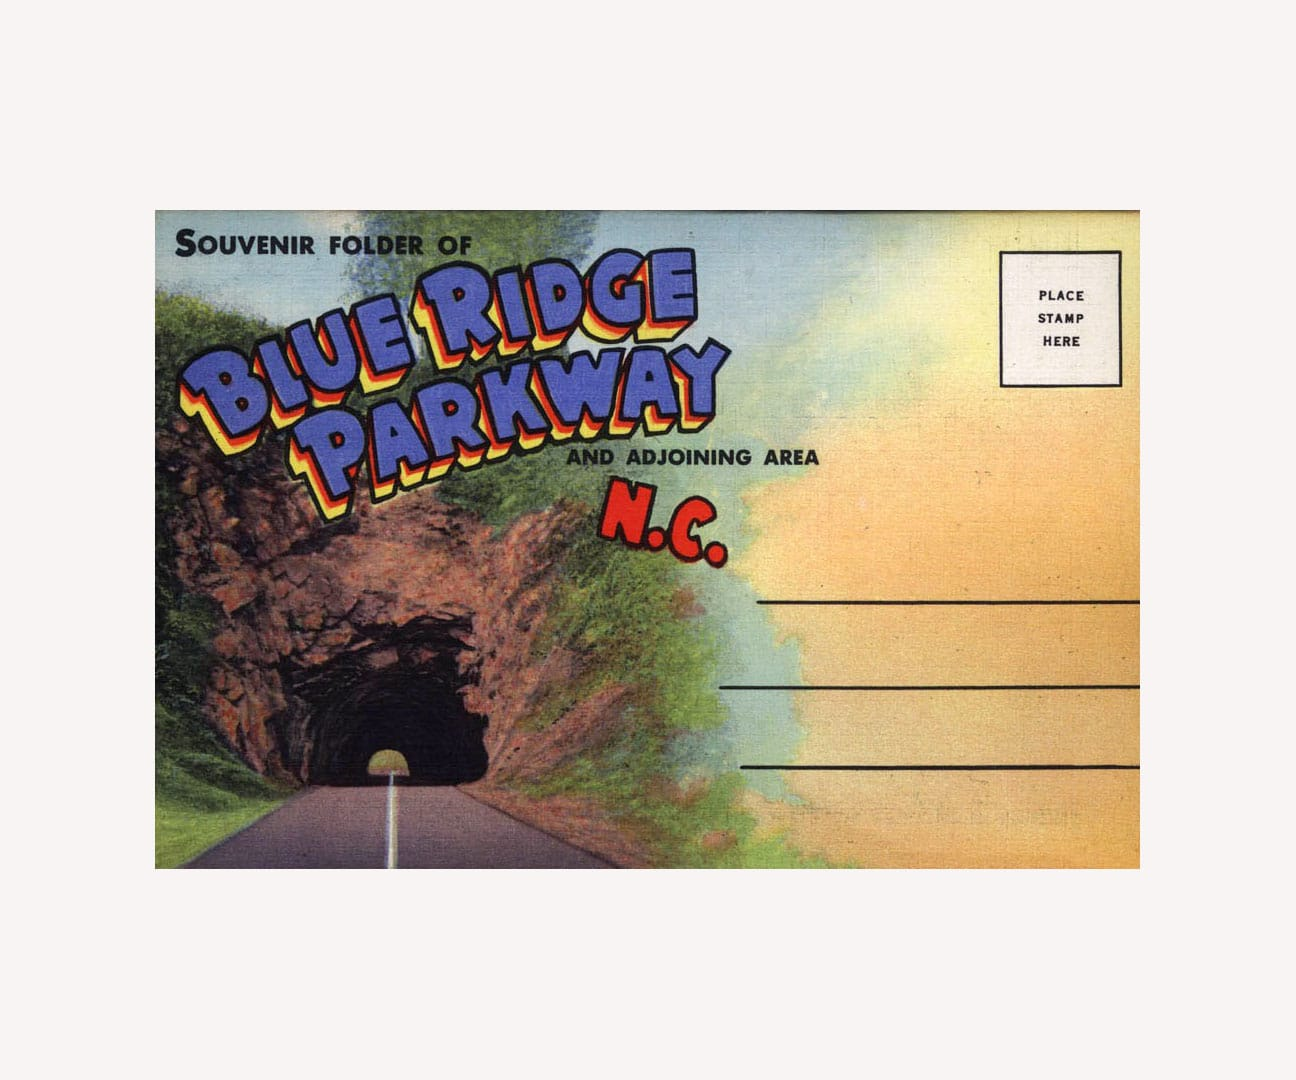 Experience The Blue Ridge Parkway